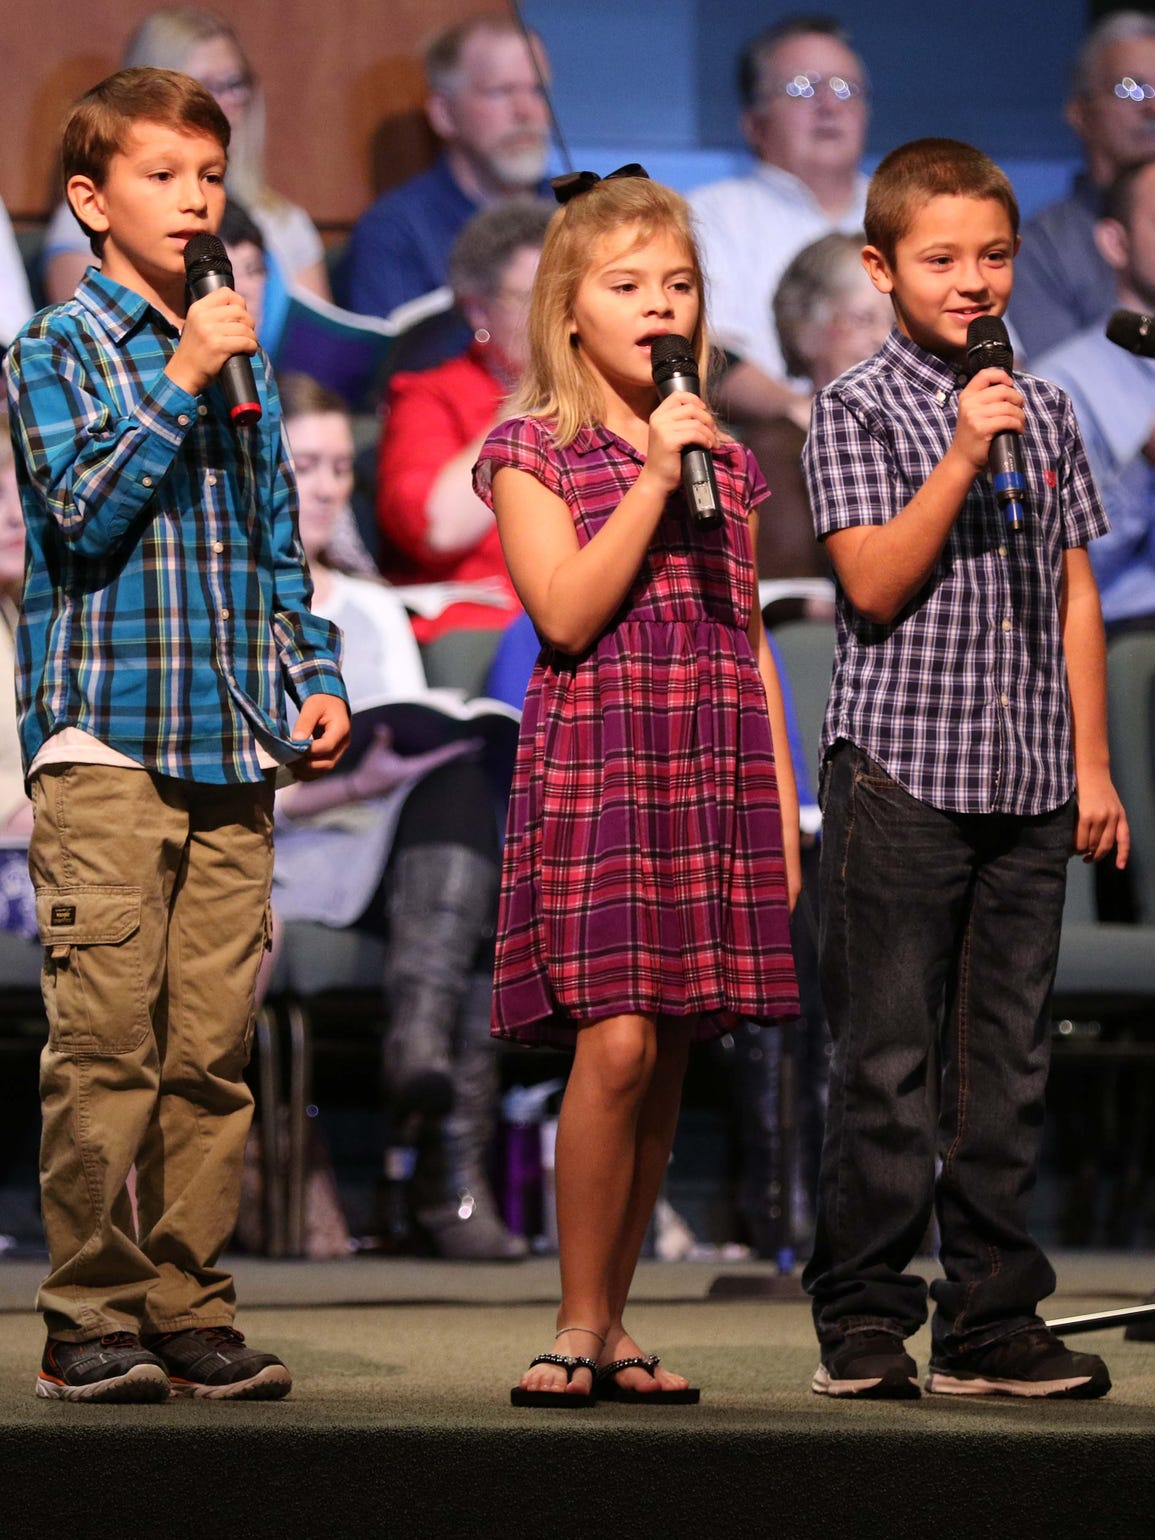 Youngsters take part in Calvary Baptist's celebration